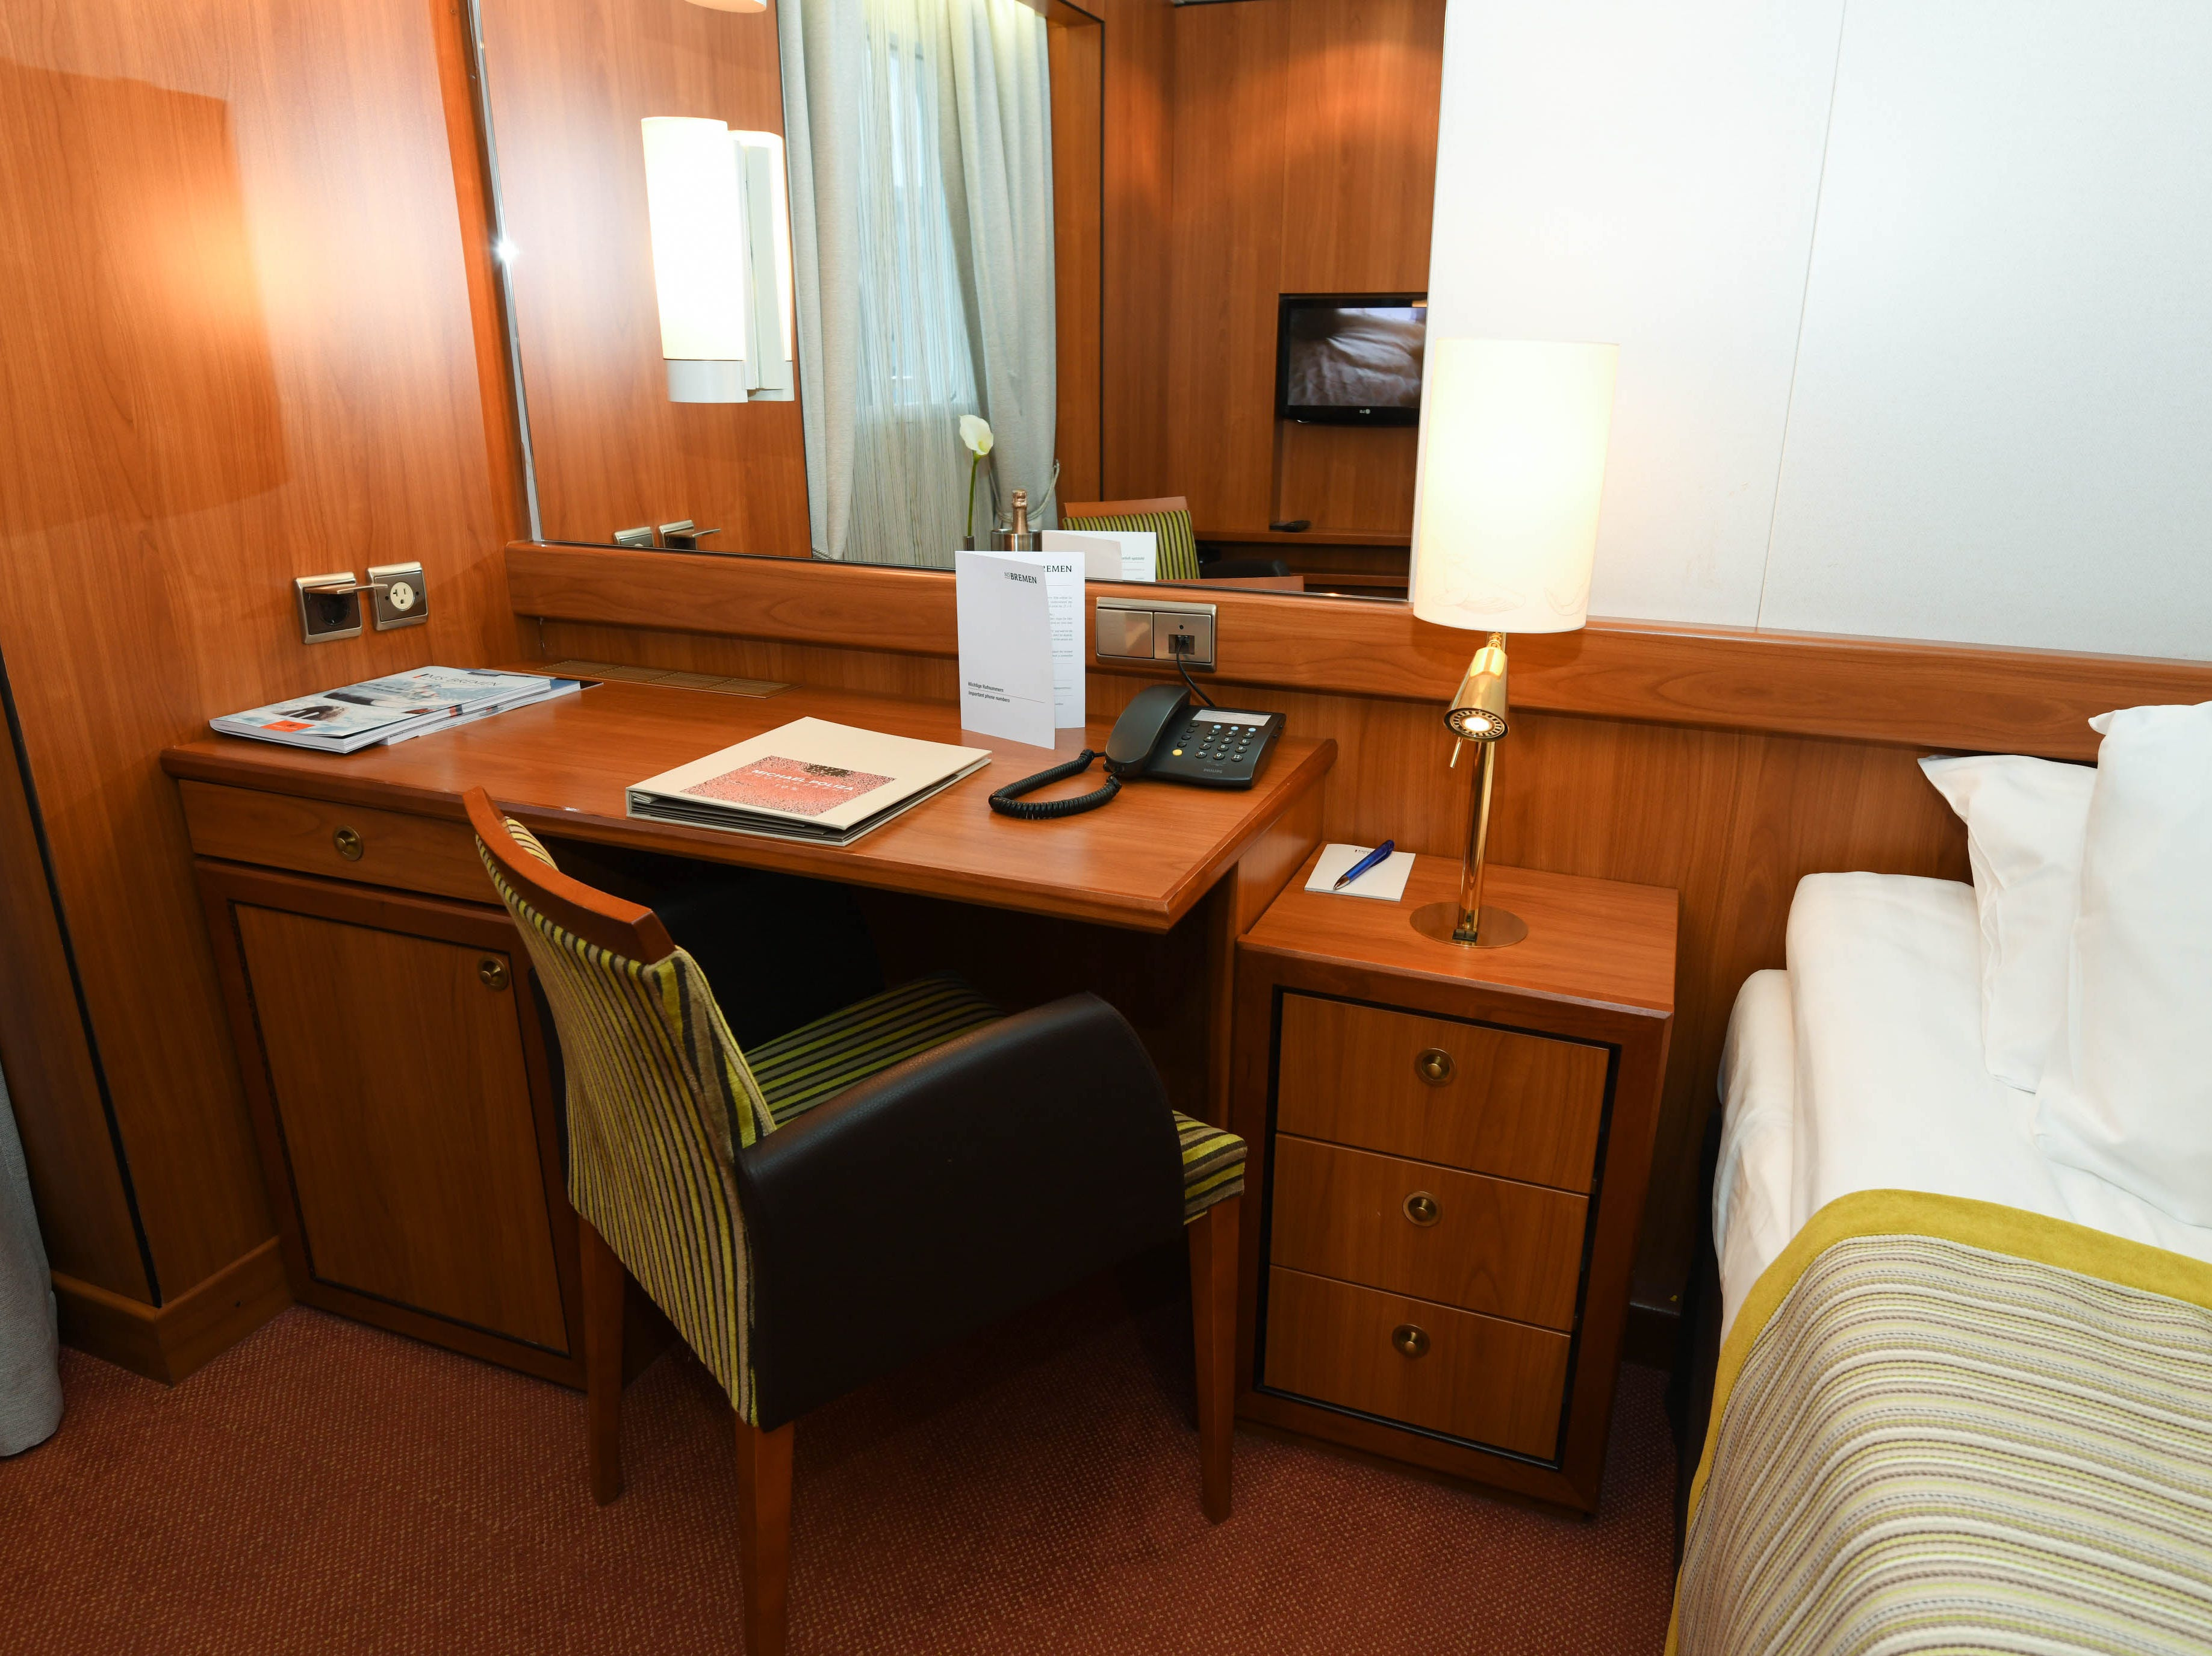 The built-in desks in Bremen cabins come with telephones that can be used for calling for room service. End tables with drawers sit on each side of the bed.